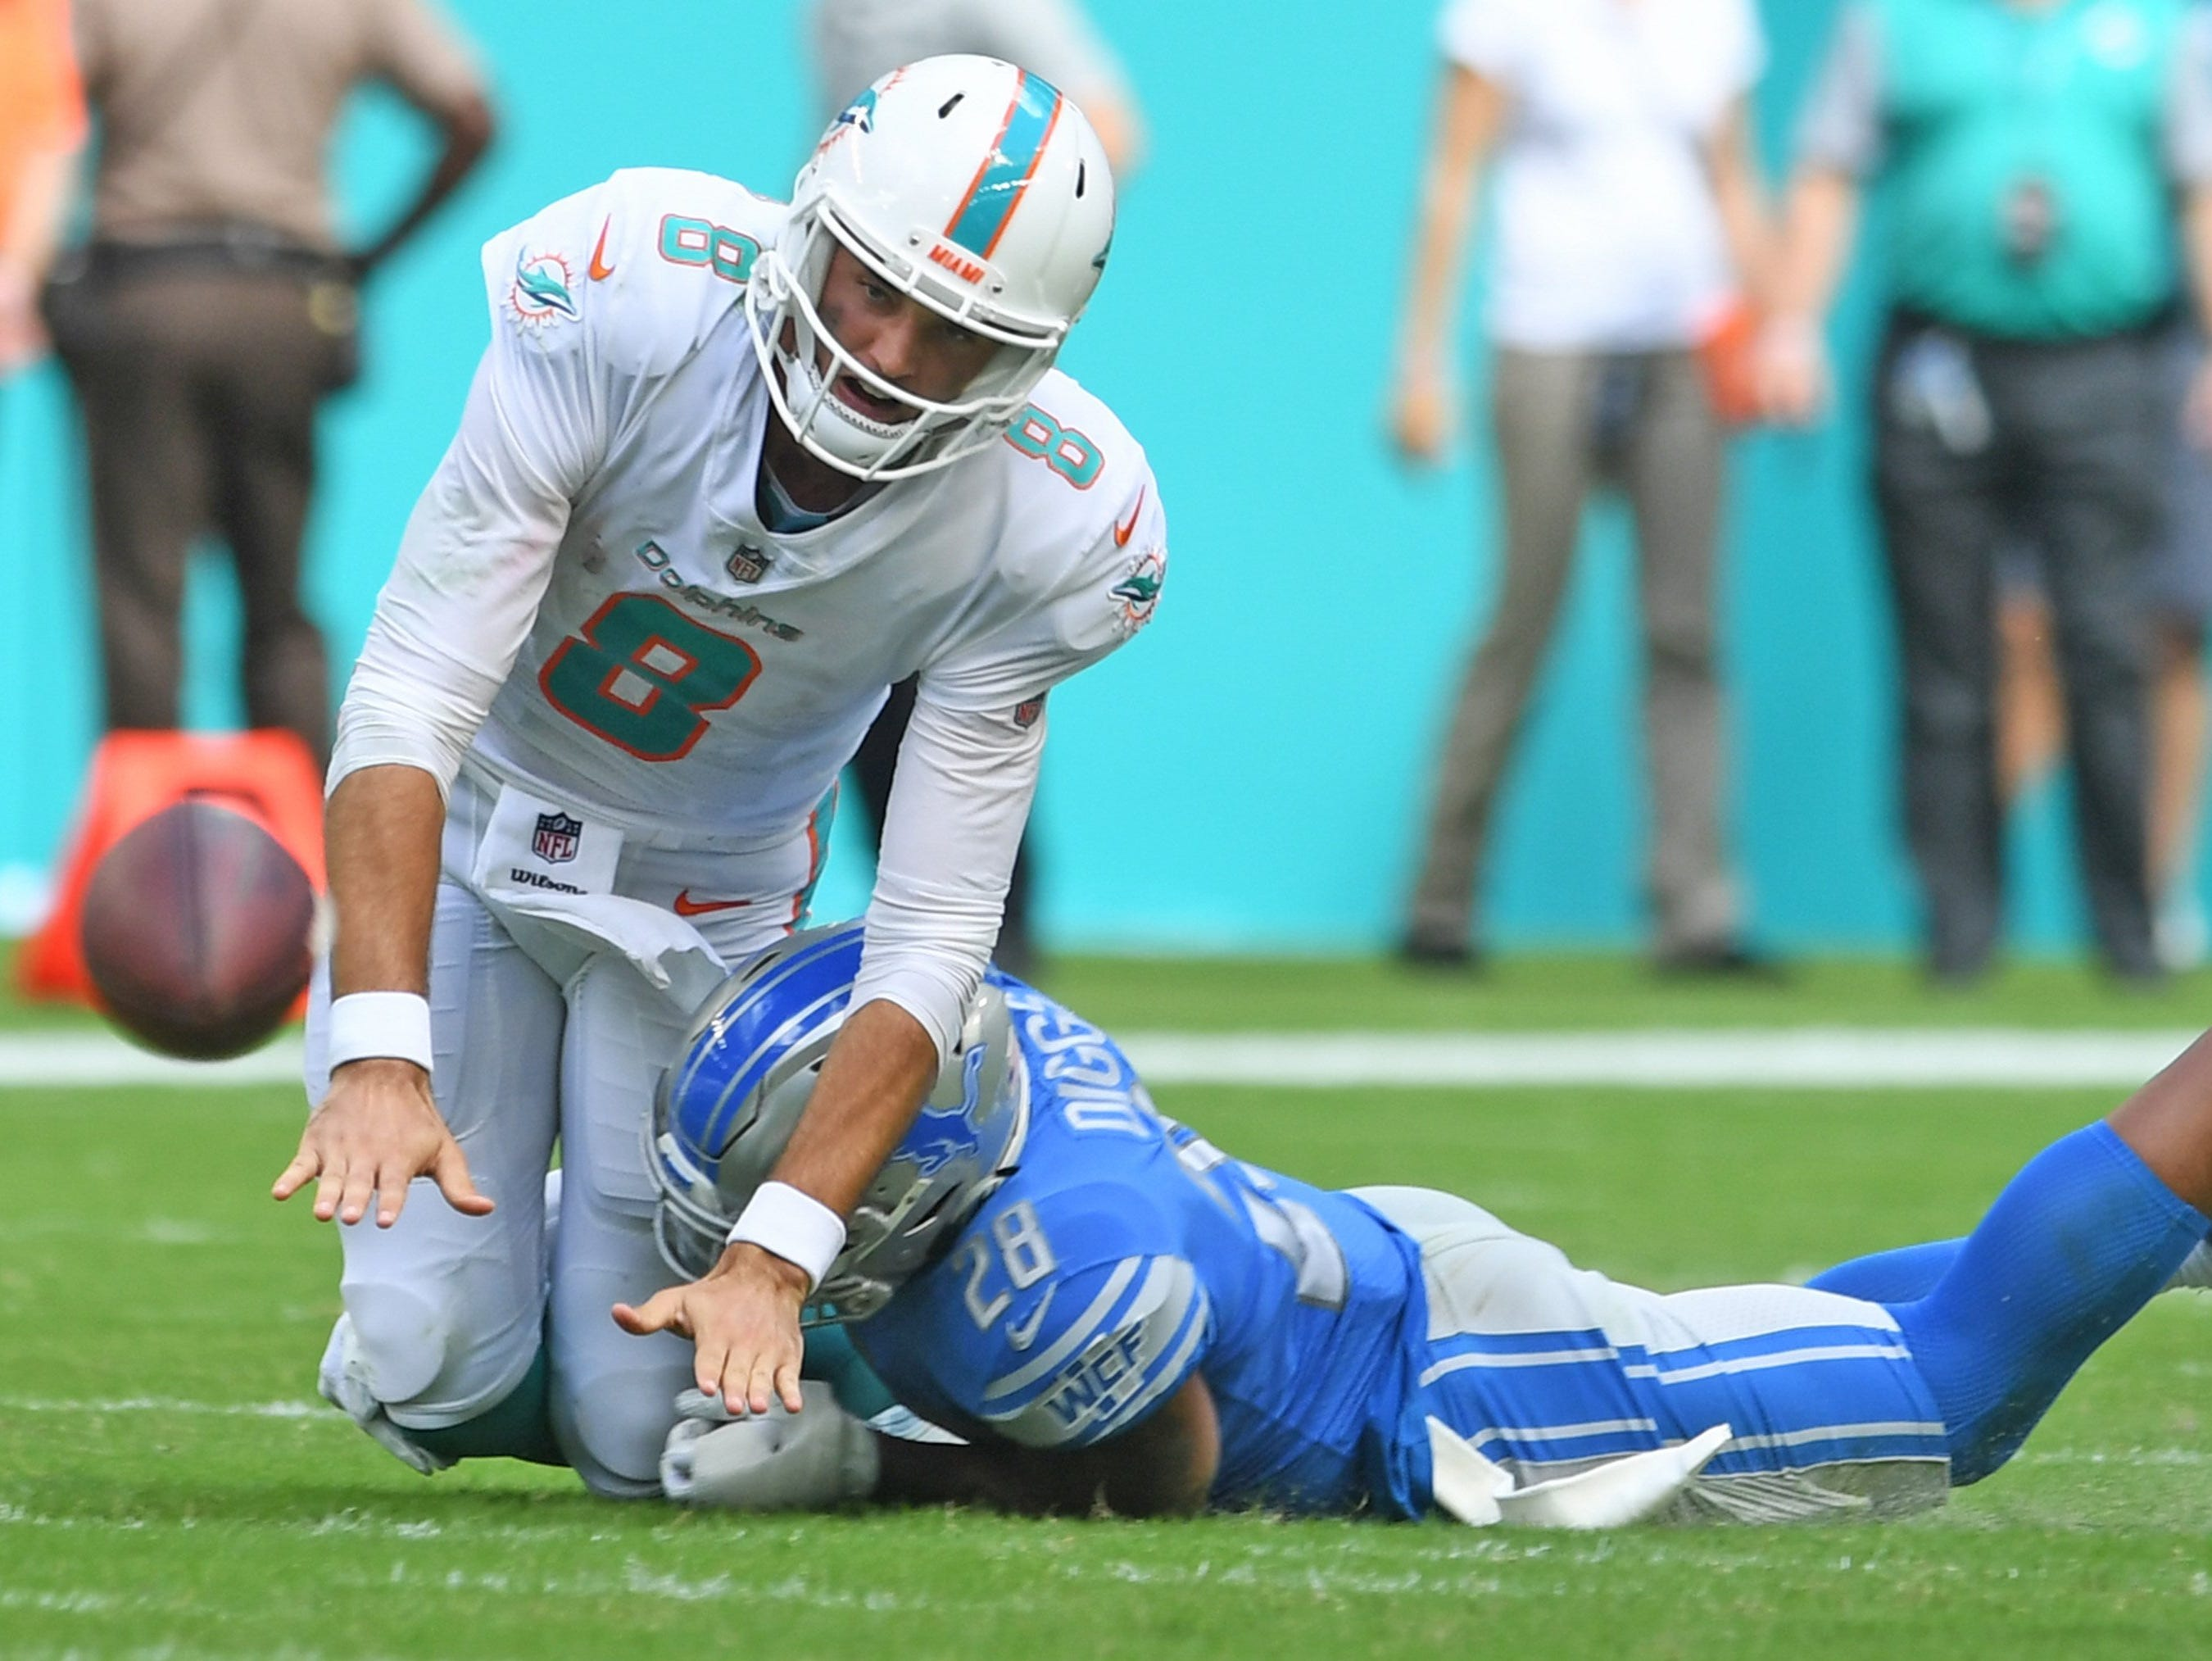 Dolphins quarterback Brock Osweiler throws the ball away before being taken down by Lions strong safety Quandre Diggs in the third quarter of the Lions' 32-21 win on Sunday, Oct. 21, 2018, in Miami Gardens, Fla.